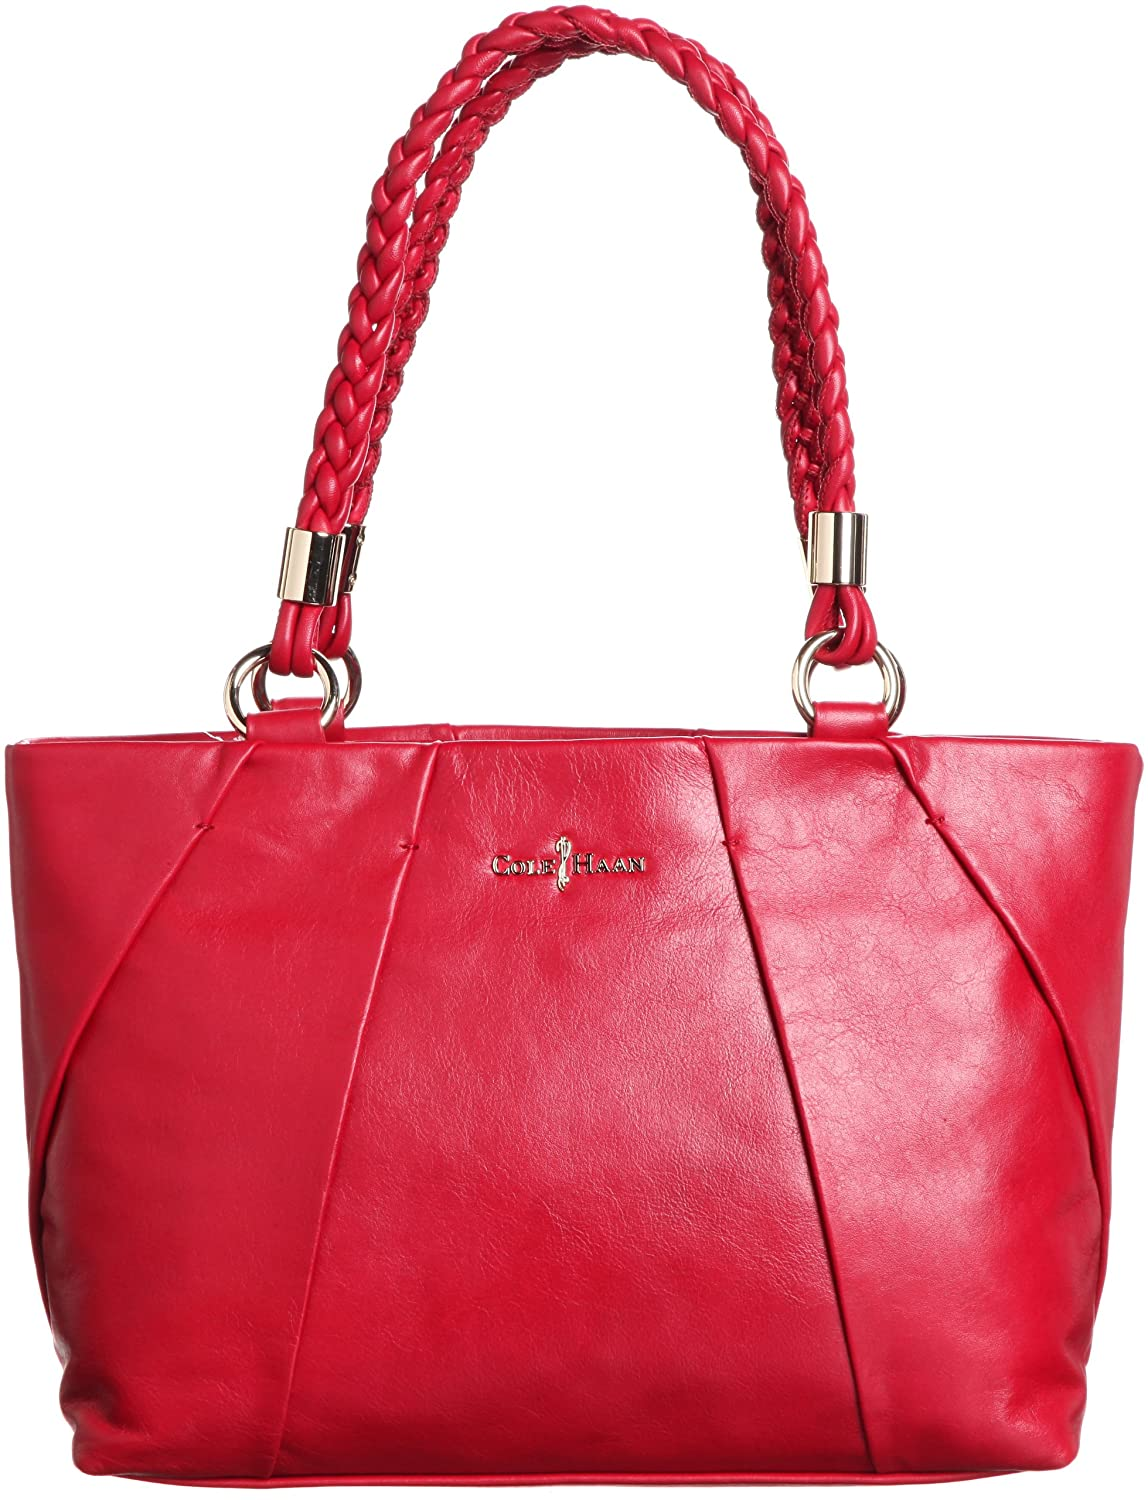 7d1a0233ad Amazon.com: Cole Haan Womens Adele Small Tote Shoulder Bag, Velvet Red, One  Size: Clothing